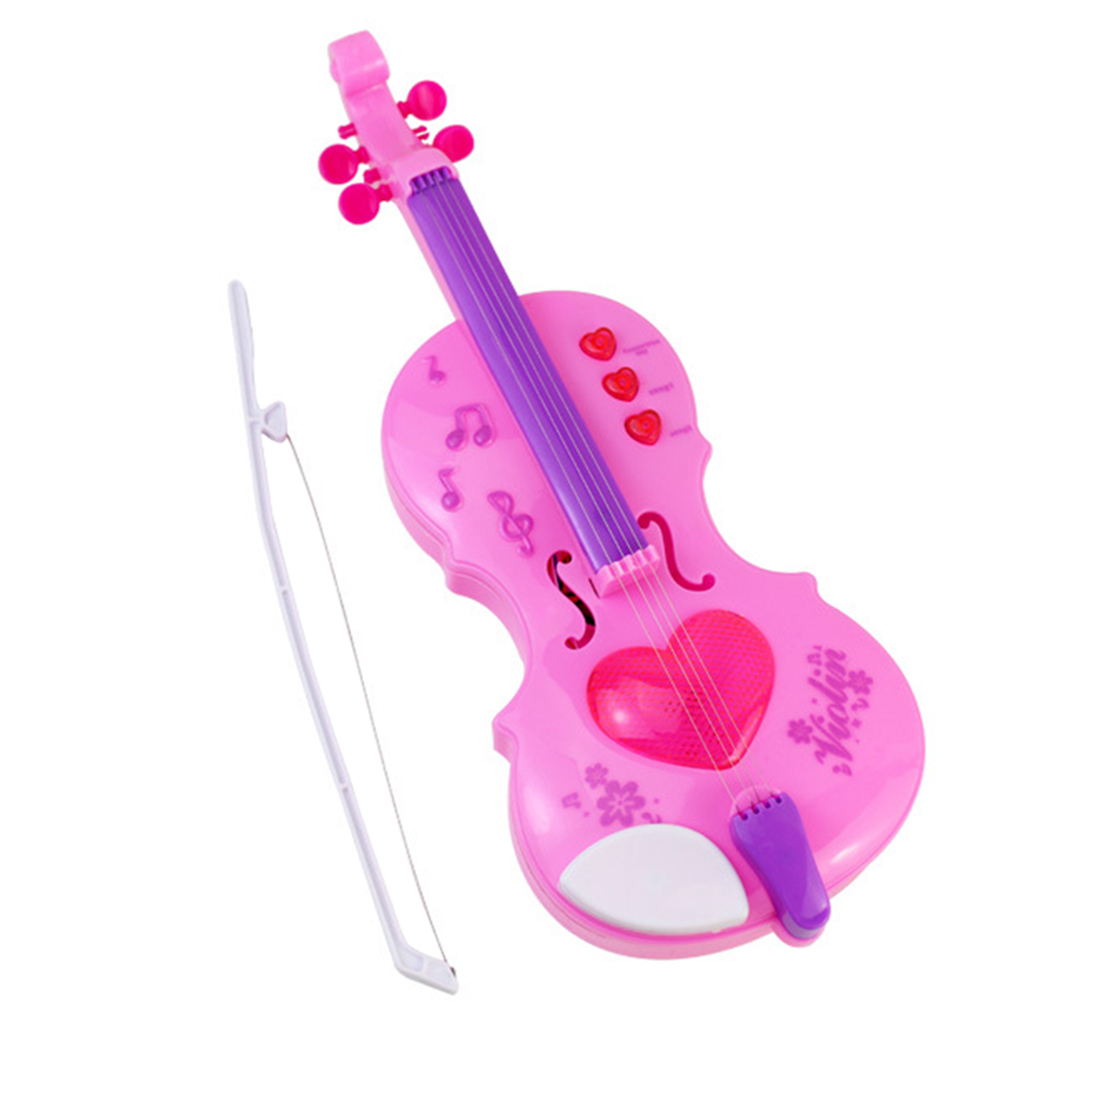 2019 Hot Sale Simulation Children Violin Toy Musical Instruments Learning Educational Toy Christmas Gifts For Children Kids Girl